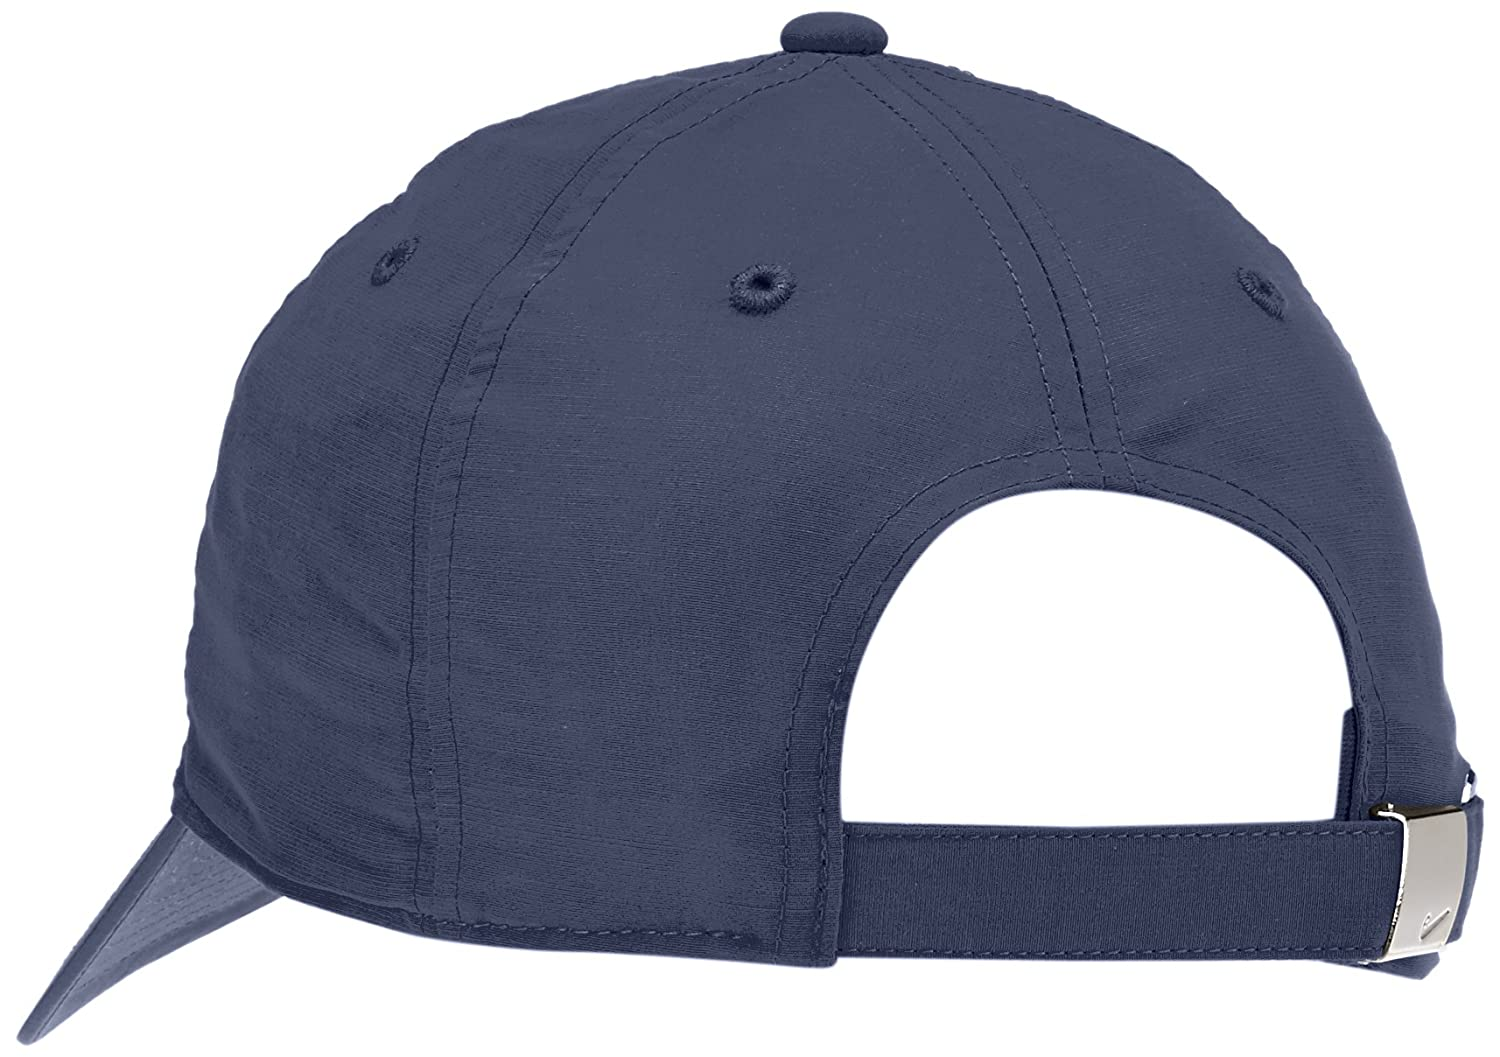 c014809ea24 Buy Nike Heritage Cap (Obsidian Metallic Silver) Online at Low Prices in  India - Amazon.in